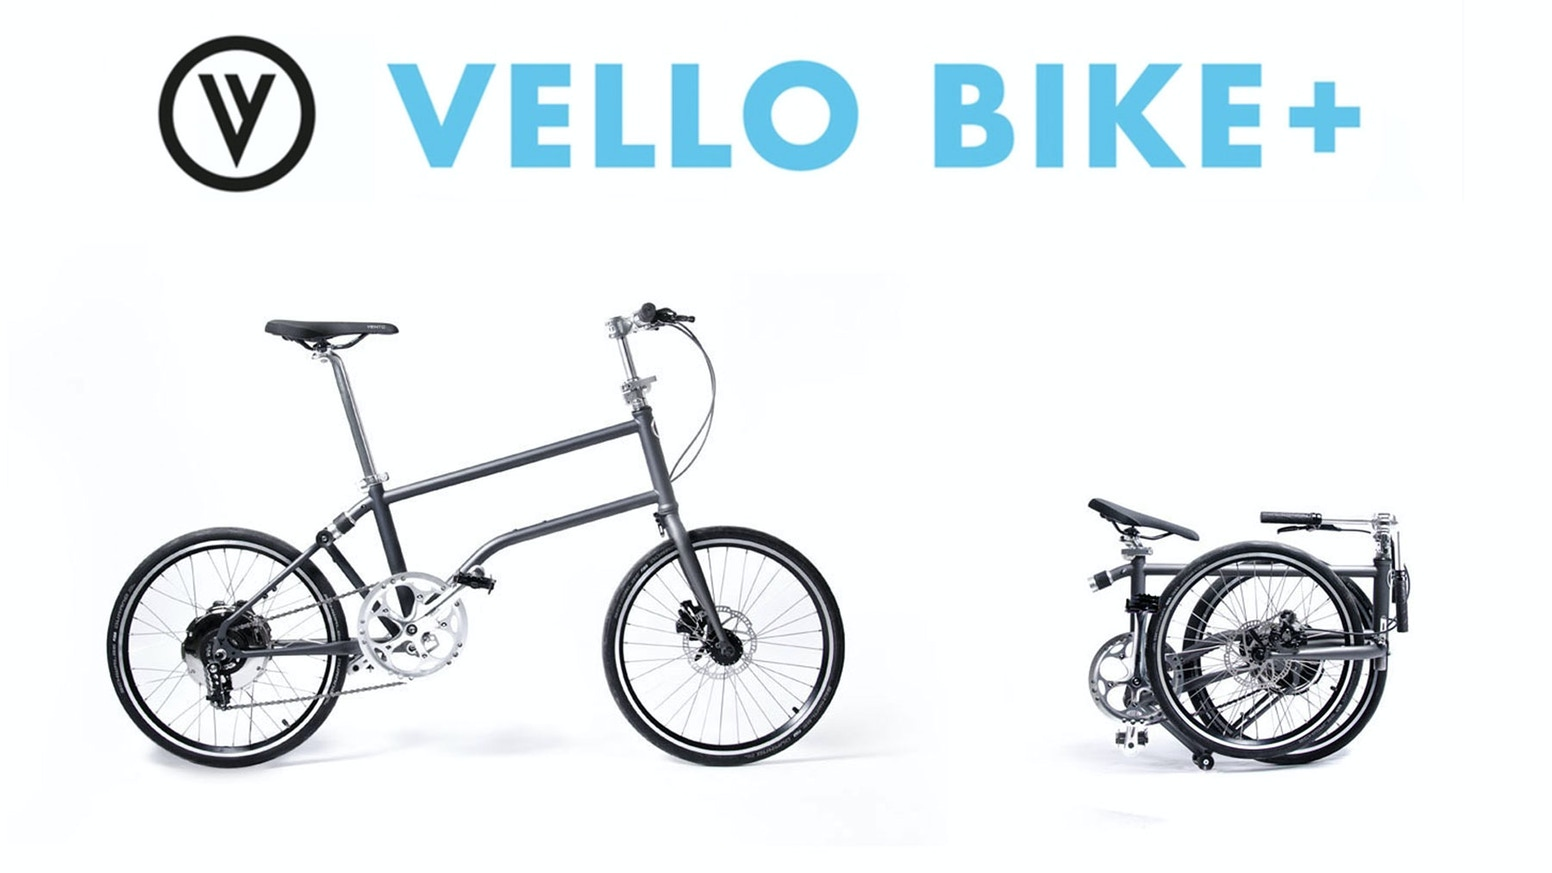 The lightest and most compact folding electric bicycle in the world! An ebike that will change the way you ride.